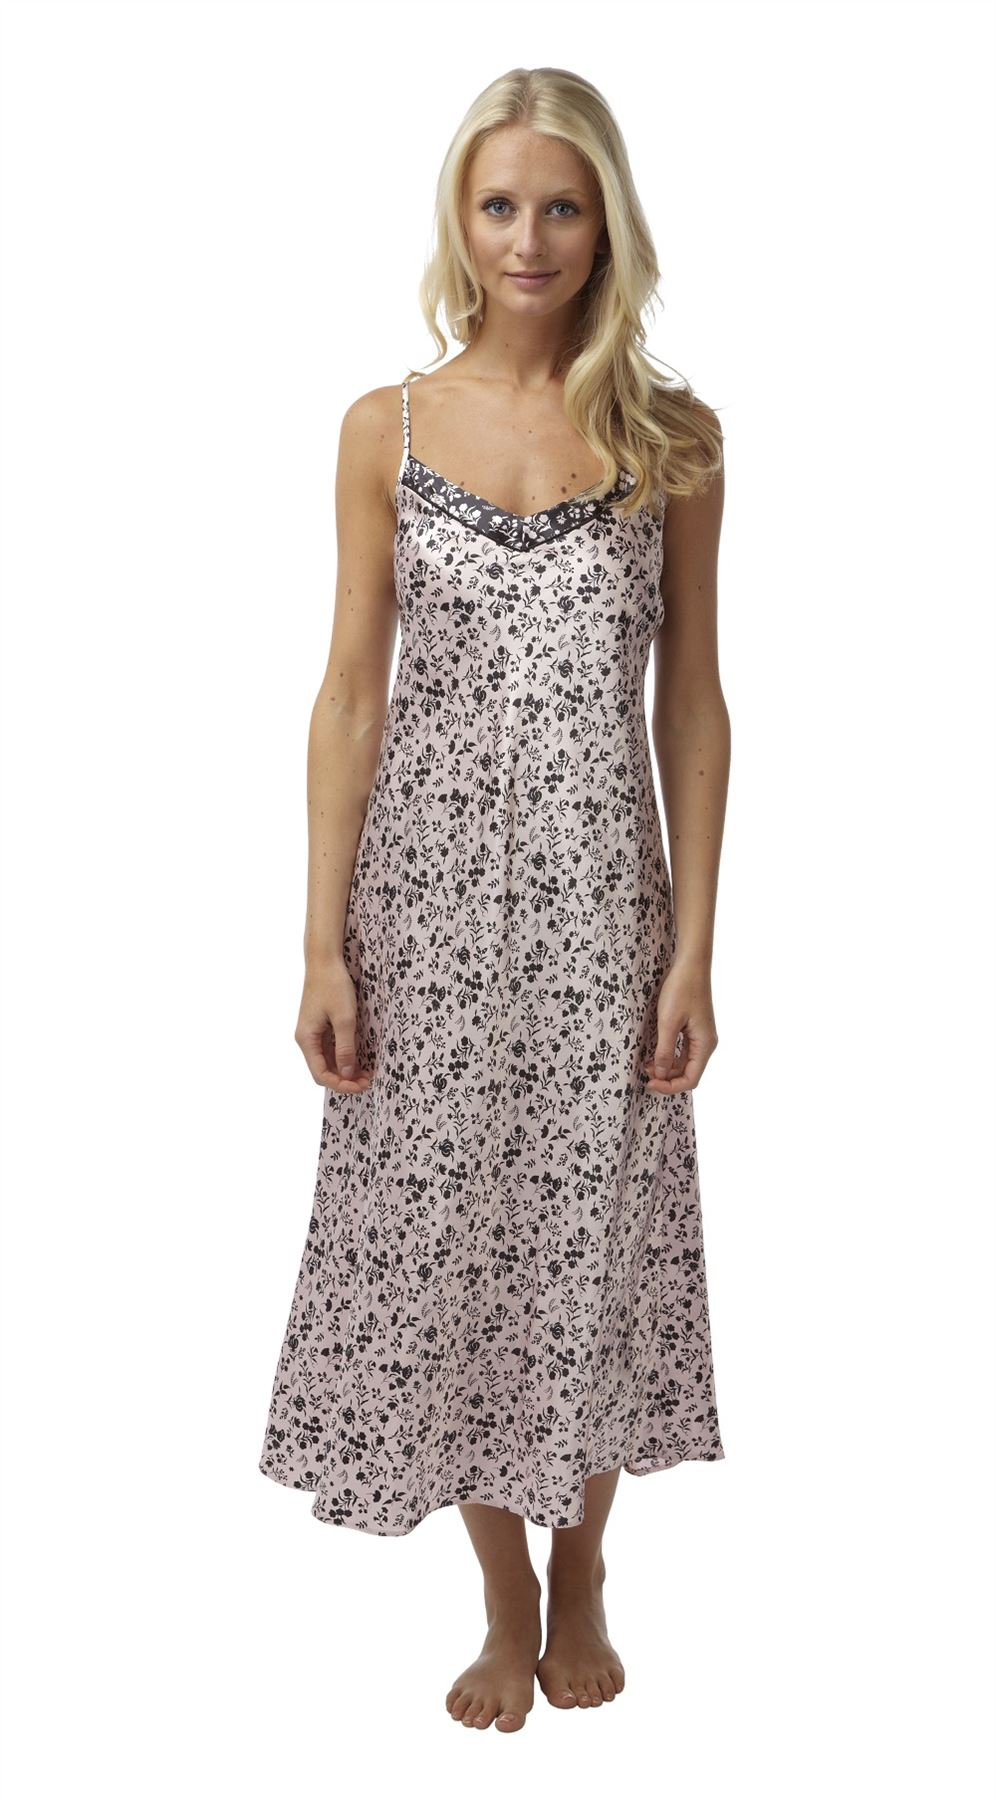 Women's Nightdresses. If you love a lie in, then you'll enjoy doing it pretty nightdresses. At George, we have a collection of comfy chemise dresses in floral .